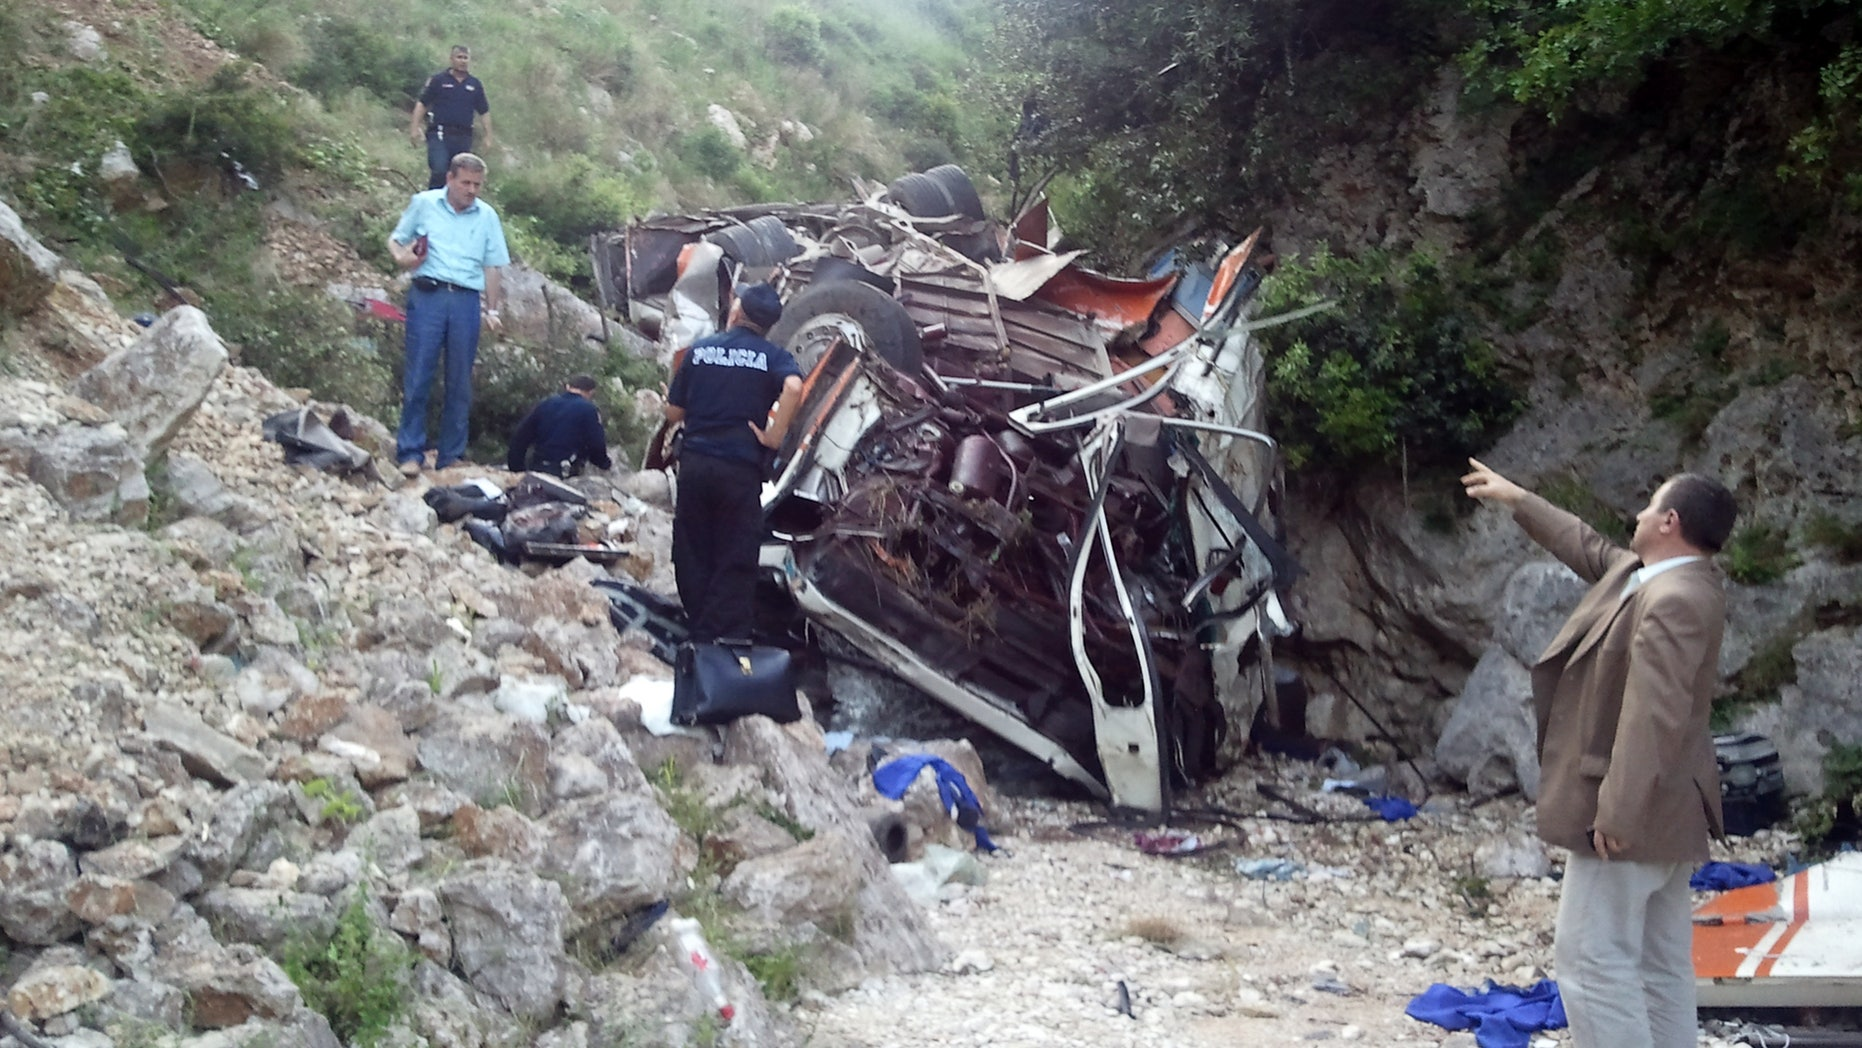 May 21: Rescue personnel attend the scene of a bus accident  as the bus lies at the bottom of a cliff near Himare southern Albania. The bus had been heading from the city of Elbasan to the southern city of Saranda. Police spokeswoman Klejda Plangarica said the bus fell some 80 meters (yards) off the road in Qafa e Vishes near the town of Himare, 137 miles (220 kilometers) south of the capital, Tirana, on Monday afternoon.